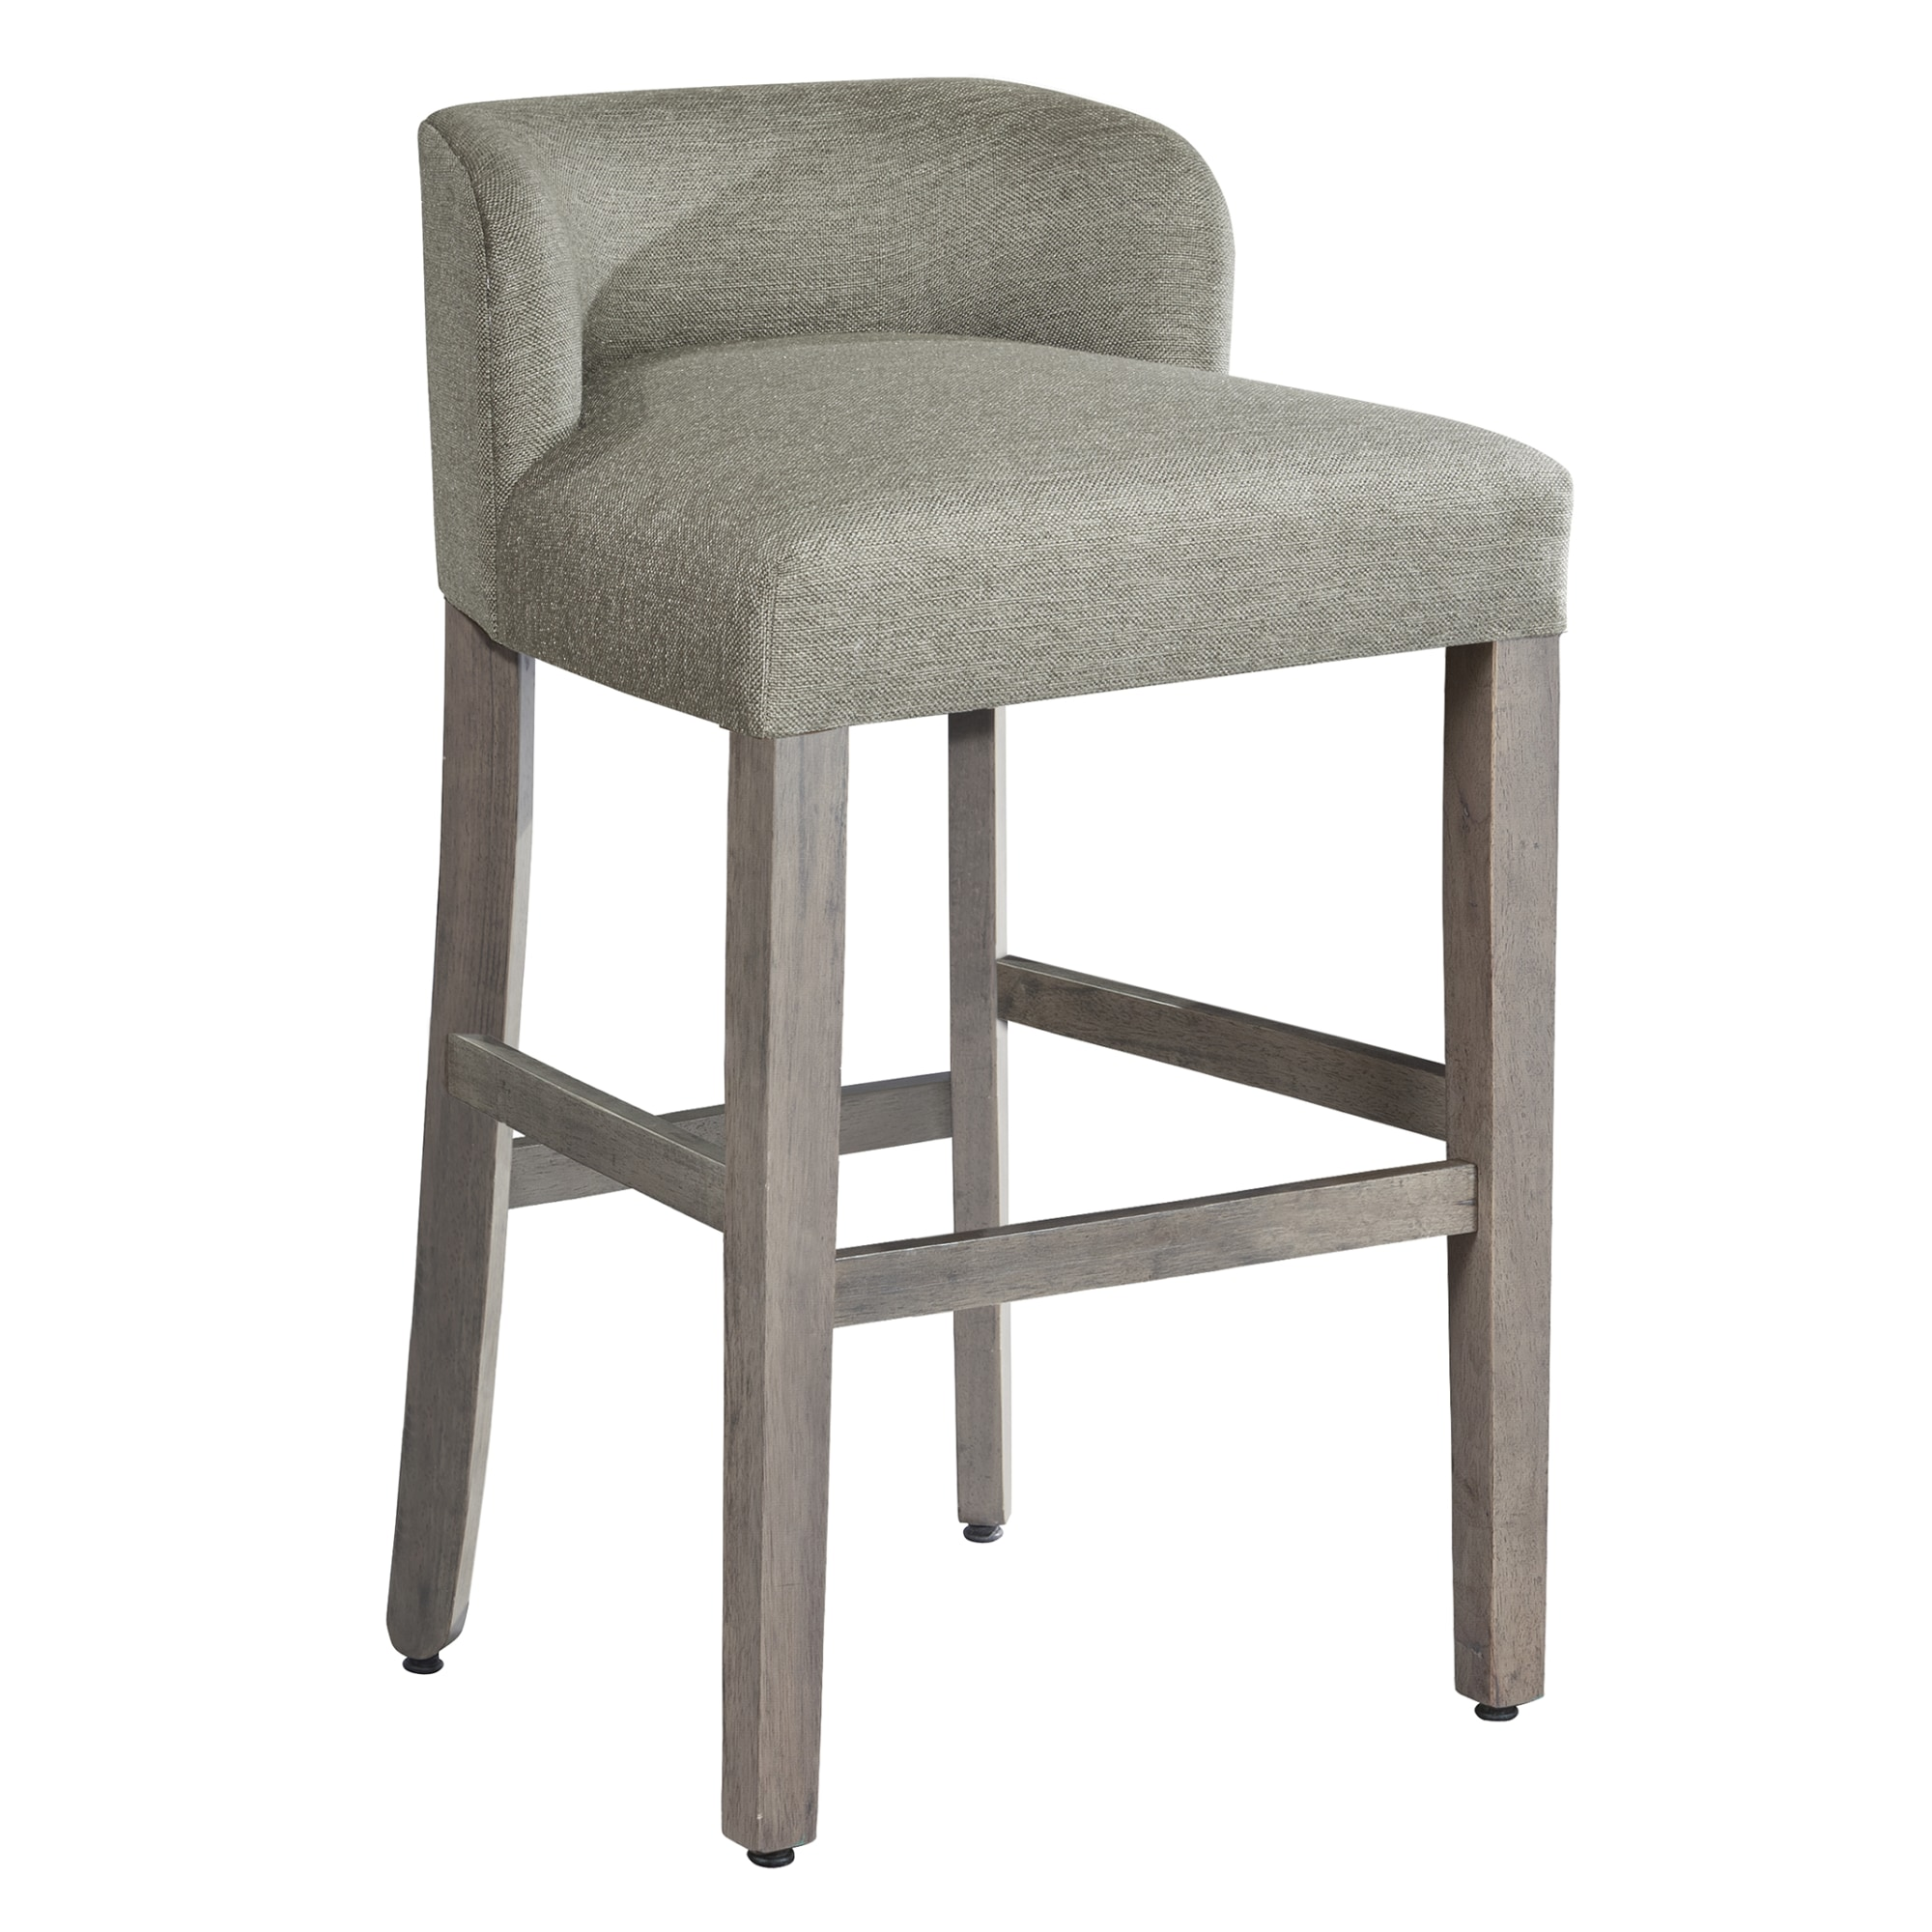 Image for 7417 Erin Bar Stool from Hekman Official Website